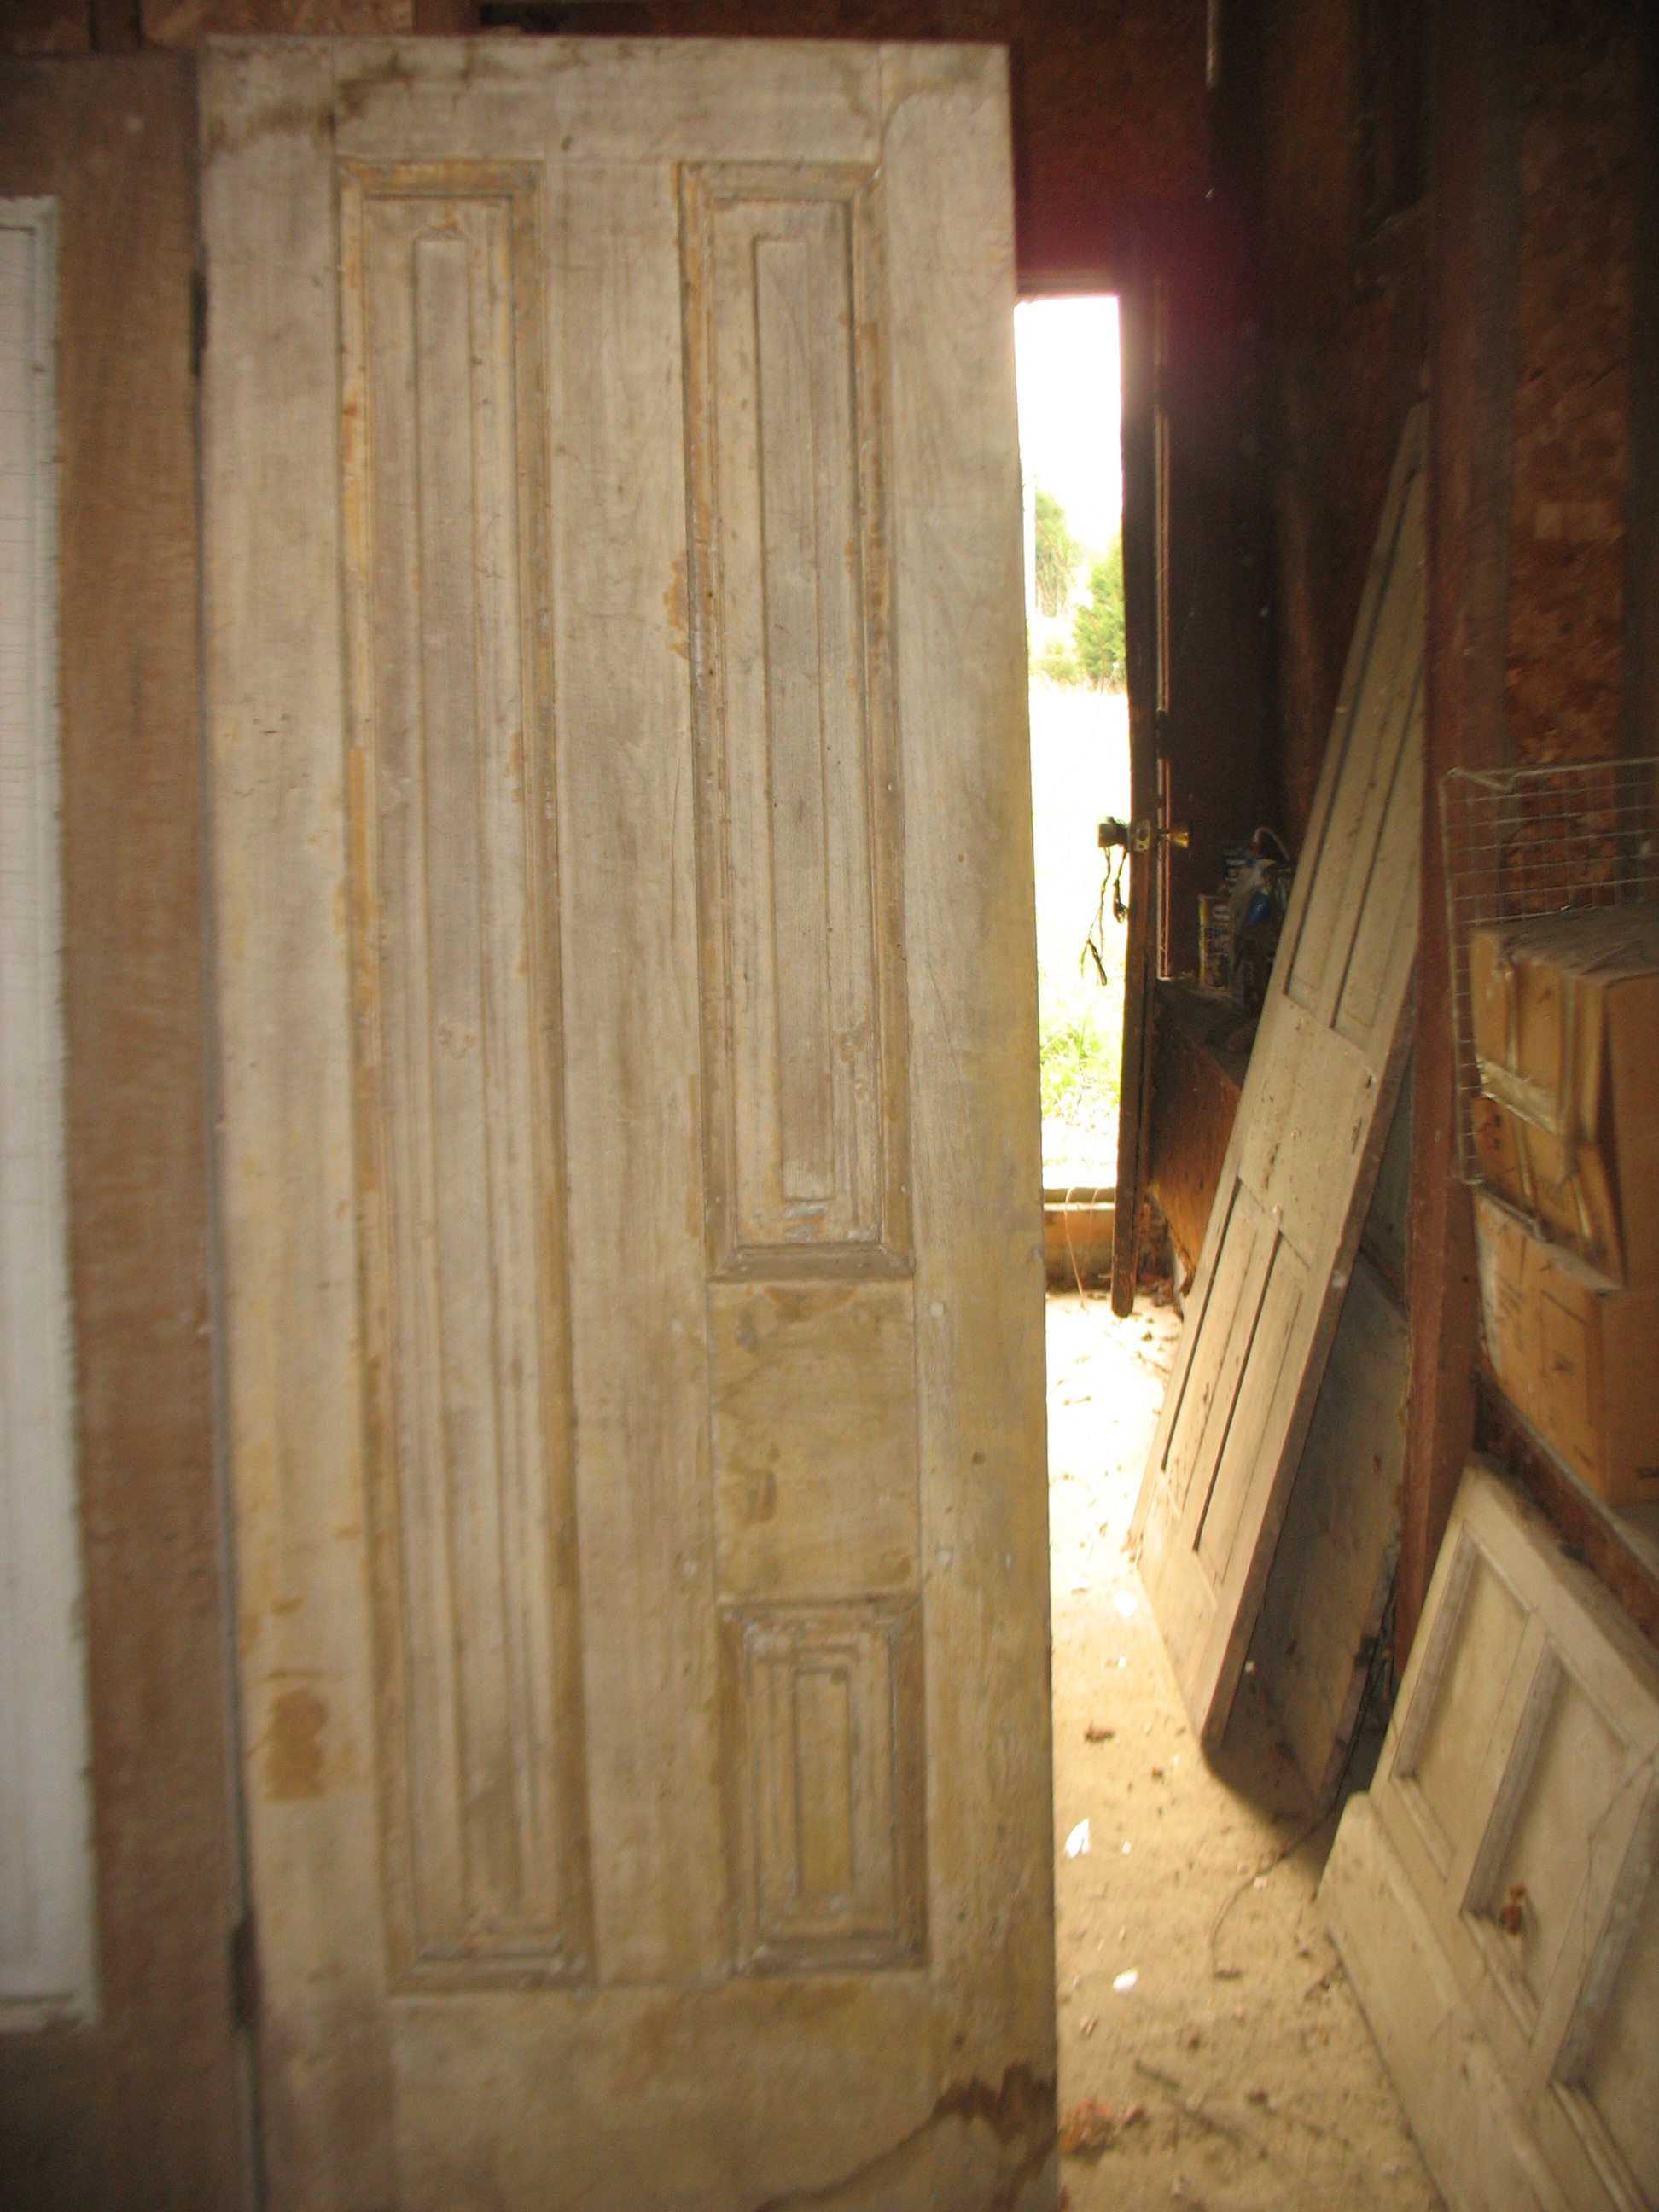 Wonderfully paneled pair of doors with original peeling white paint. 8 feet tall and 3 feet wide each door. That would make the pair 6 feet wide. They are of walnut and early 1800's.